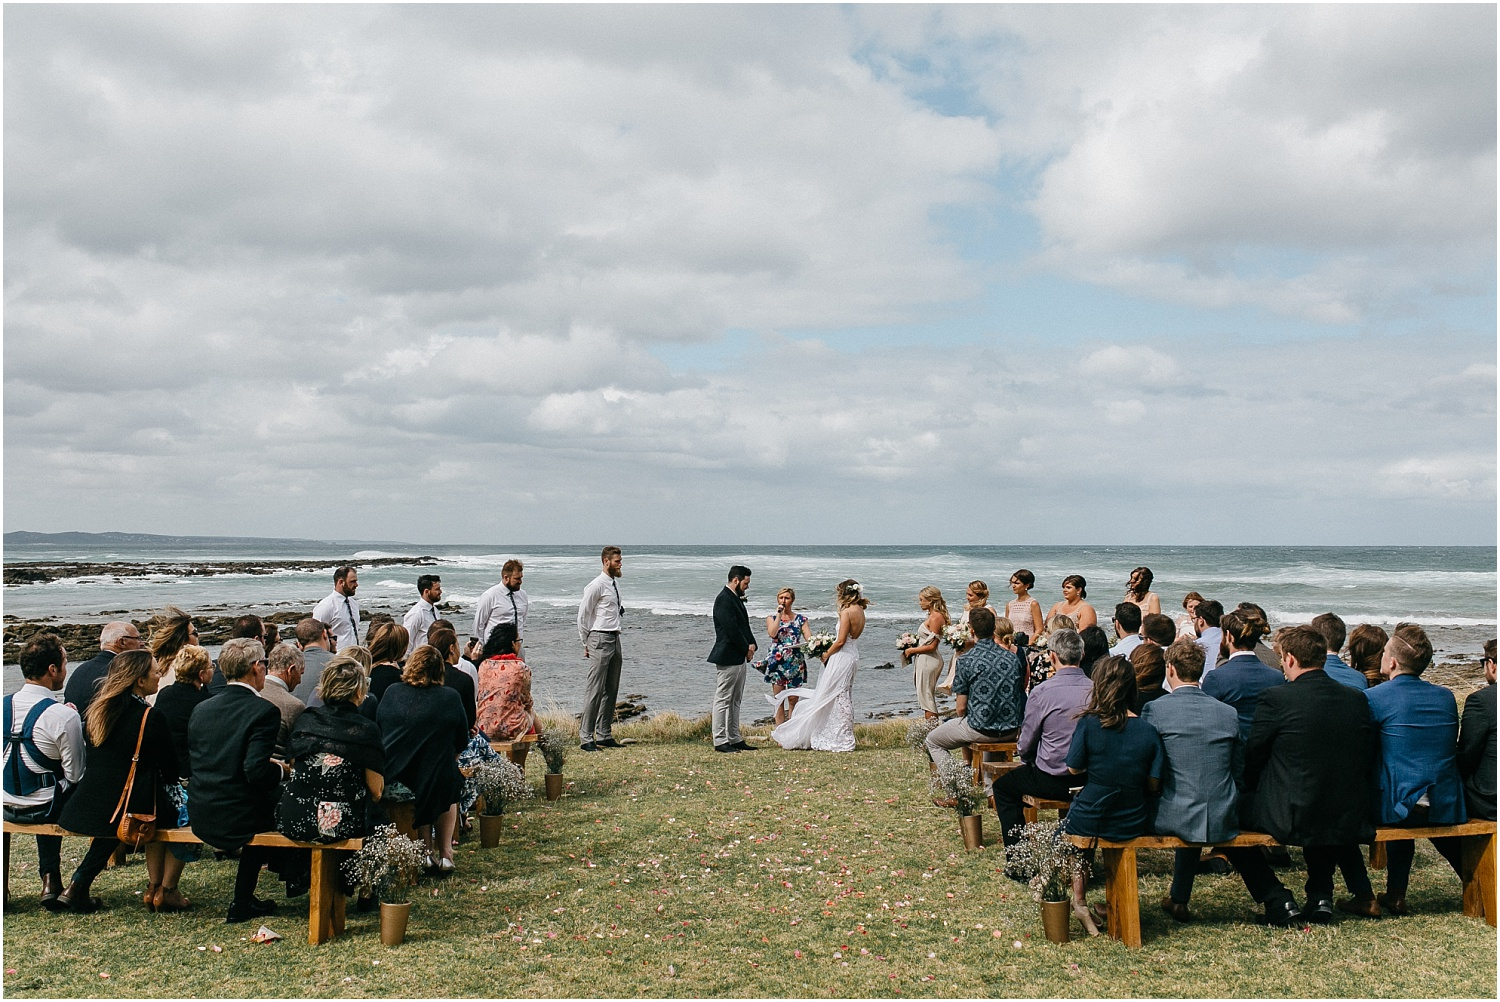 Estelle and Joey's summer beach wedding in Lorne at the Lorne Beach Pavilion on the Great Ocean Road._0064.jpg